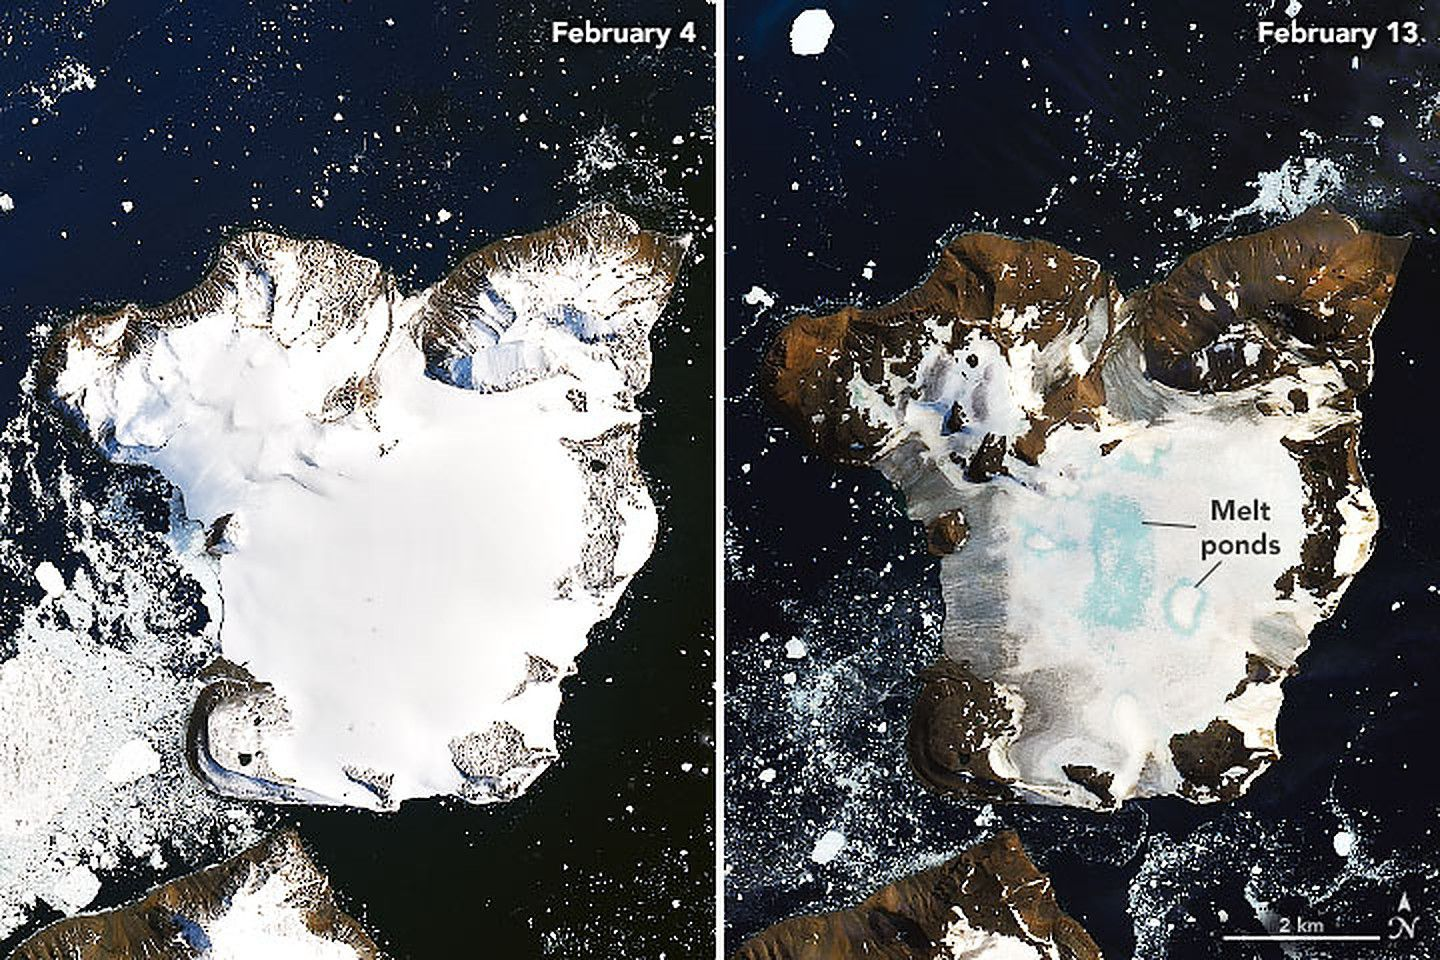 Heat wave melts 20% of snow cover from Antarctic island in days - Axios